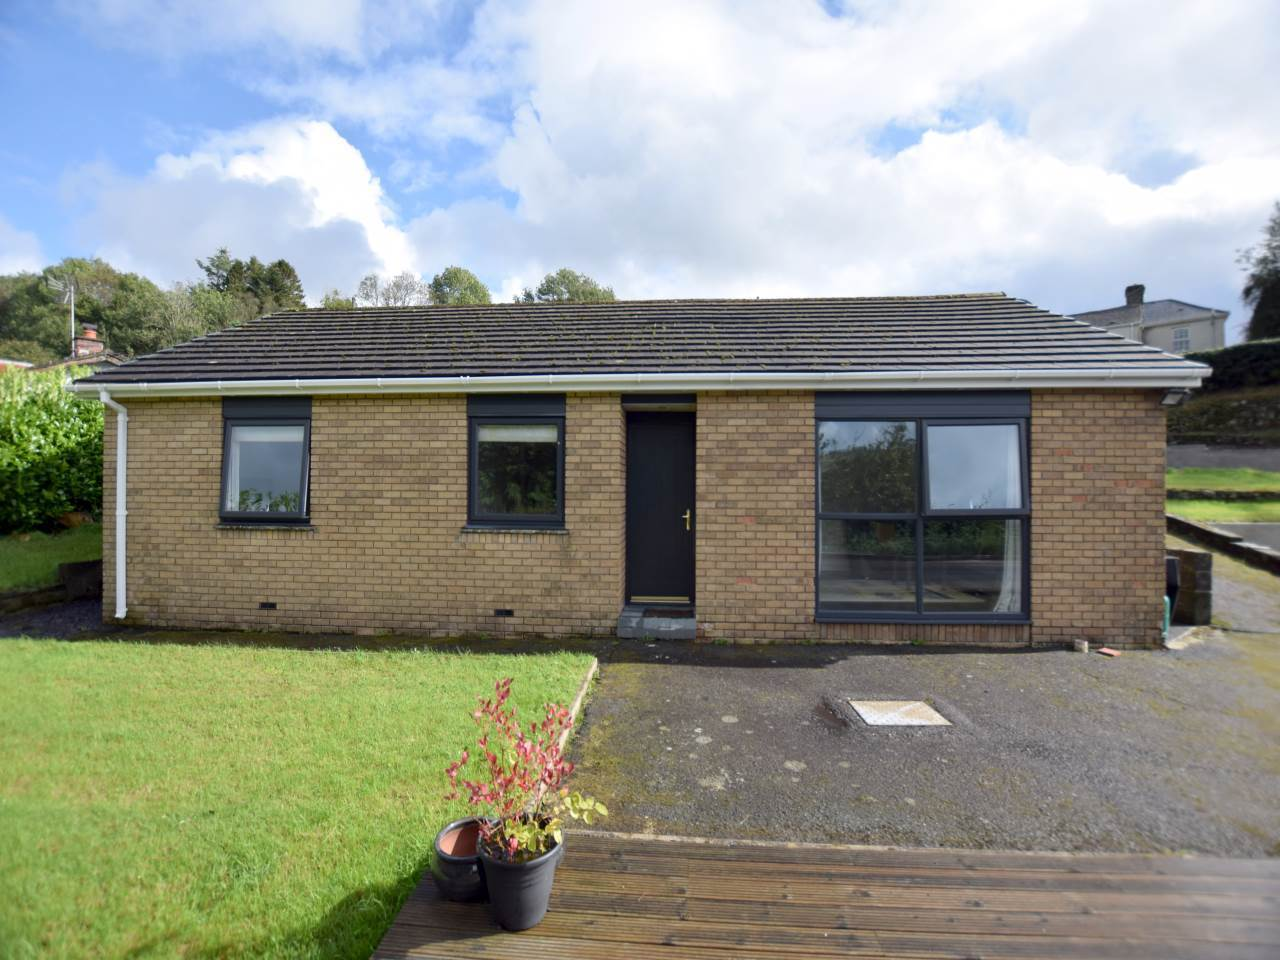 3 bed house for sale in Ysbyty Ystwyth , Ystrad Meurig  - Property Image 1